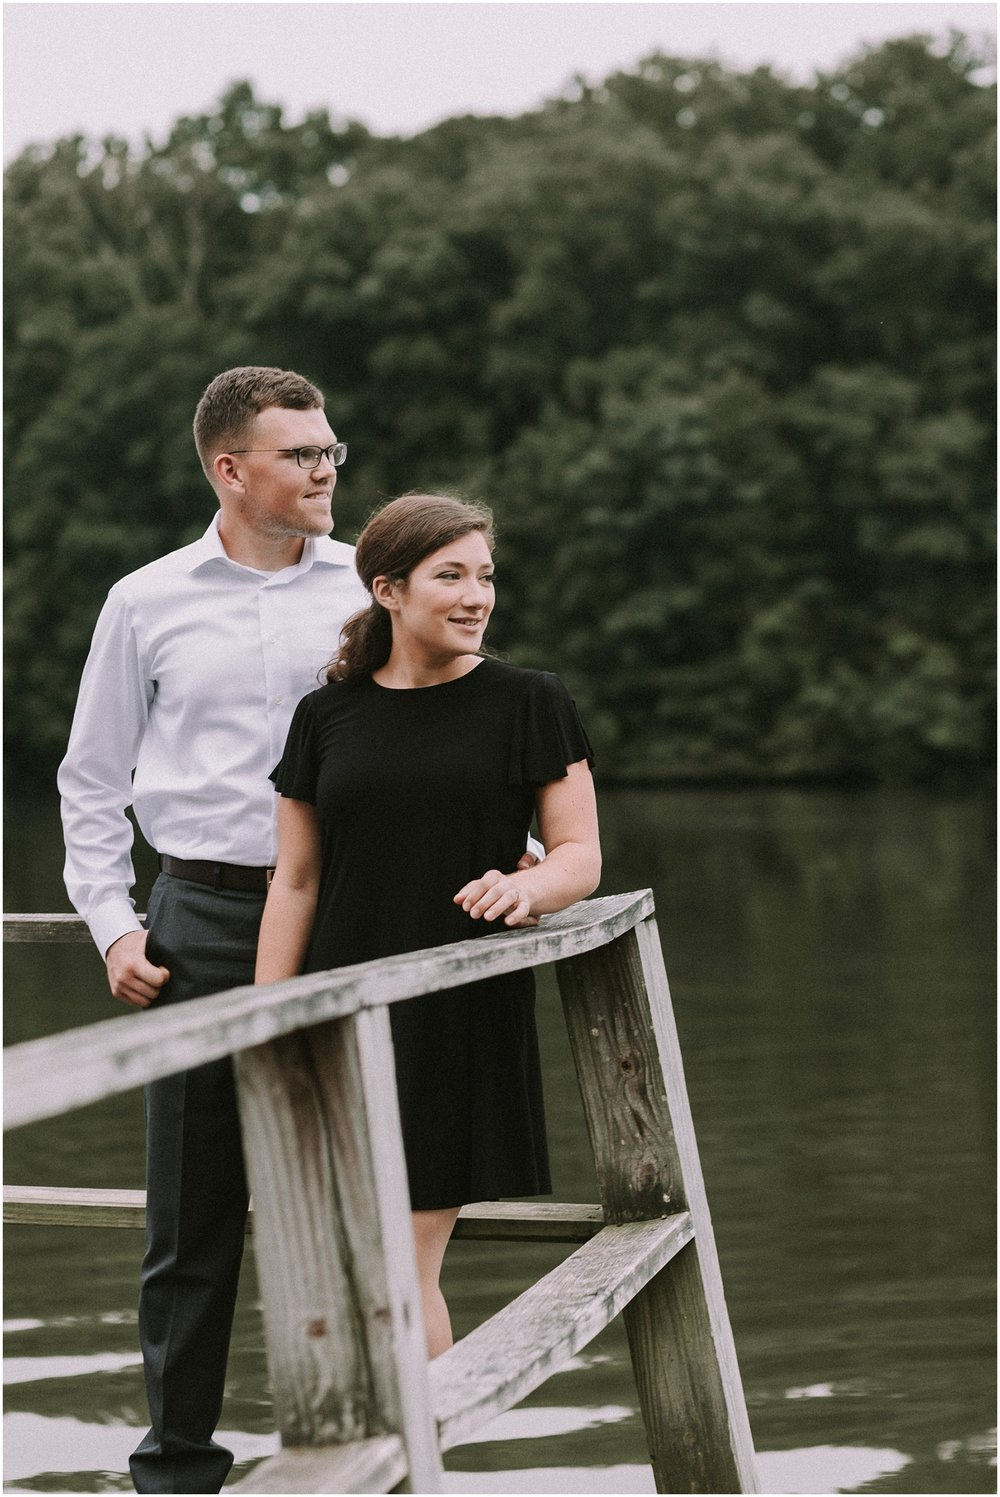 gifford pinchot state park-engagement-anniversary-photo session-outdoor photos-husband-wife-central pennsylvania_0332.jpg